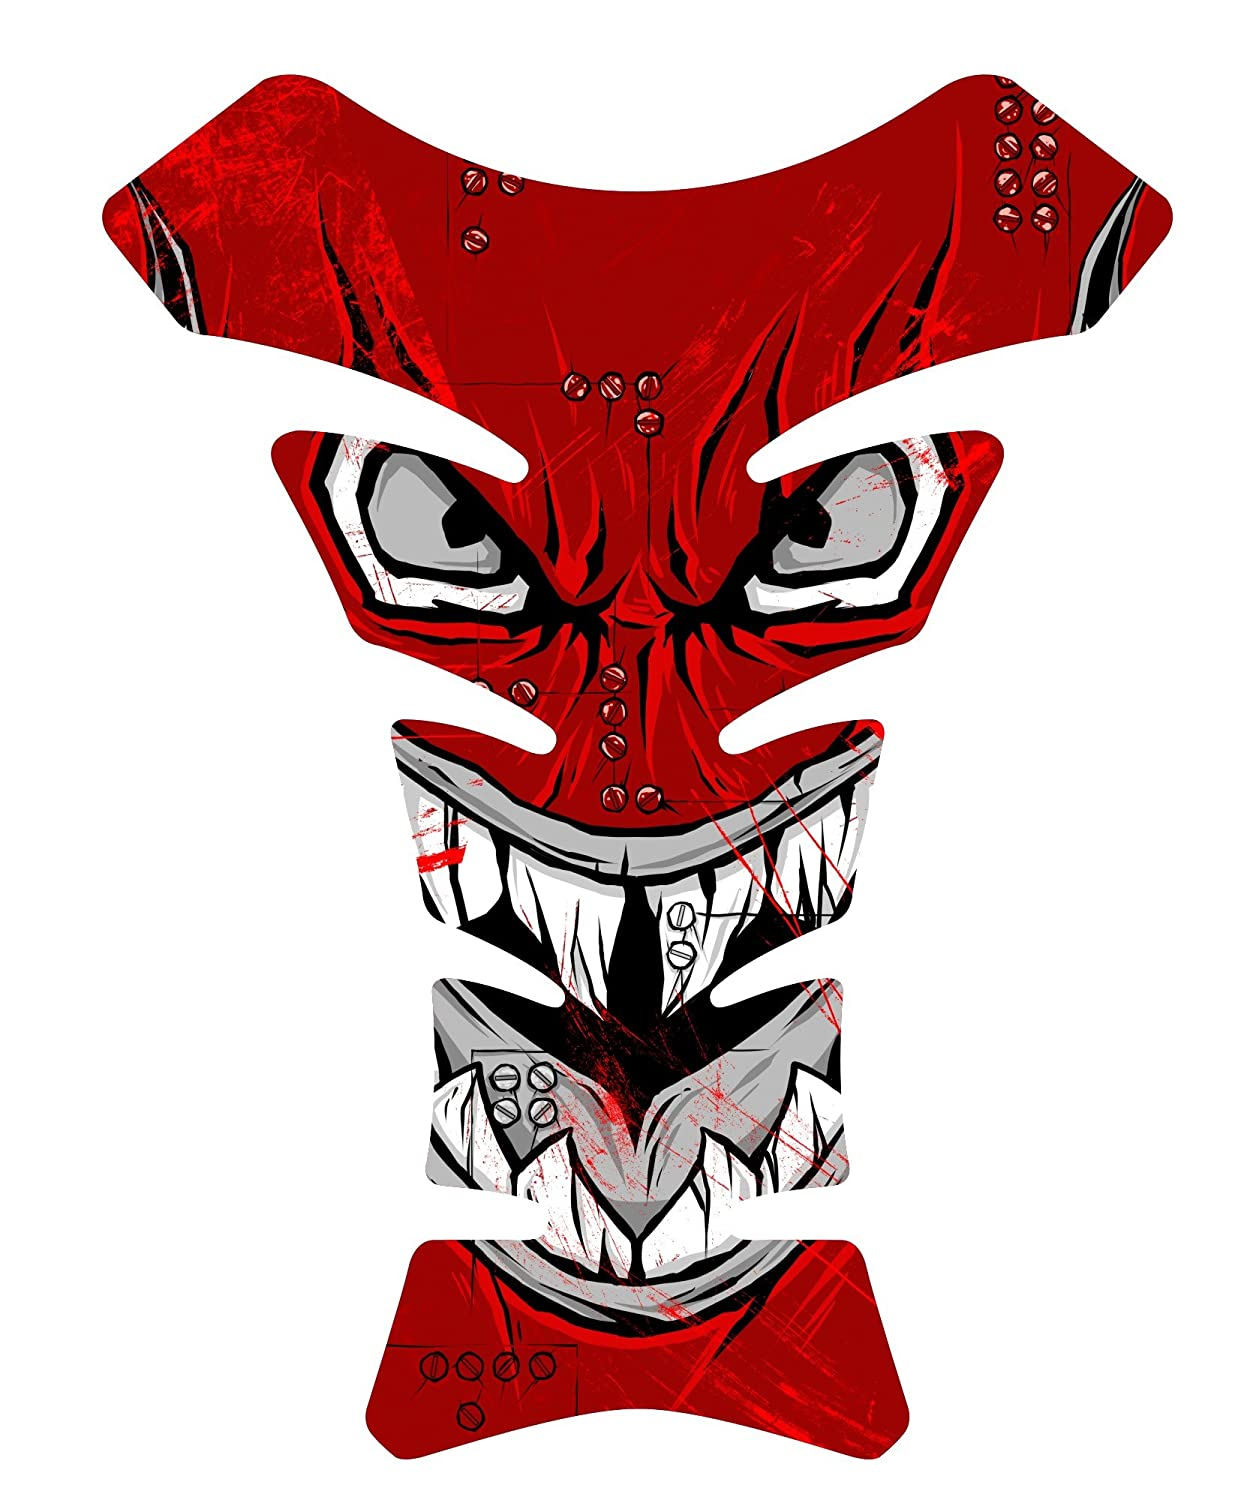 Size is 8.5 in tall x 6.5 in wide Tiger Fighter Shark Front Red Gray World War 3d Gel Motorcycle Gas Tankpad Motorcycle TanK pad Decal Sticker